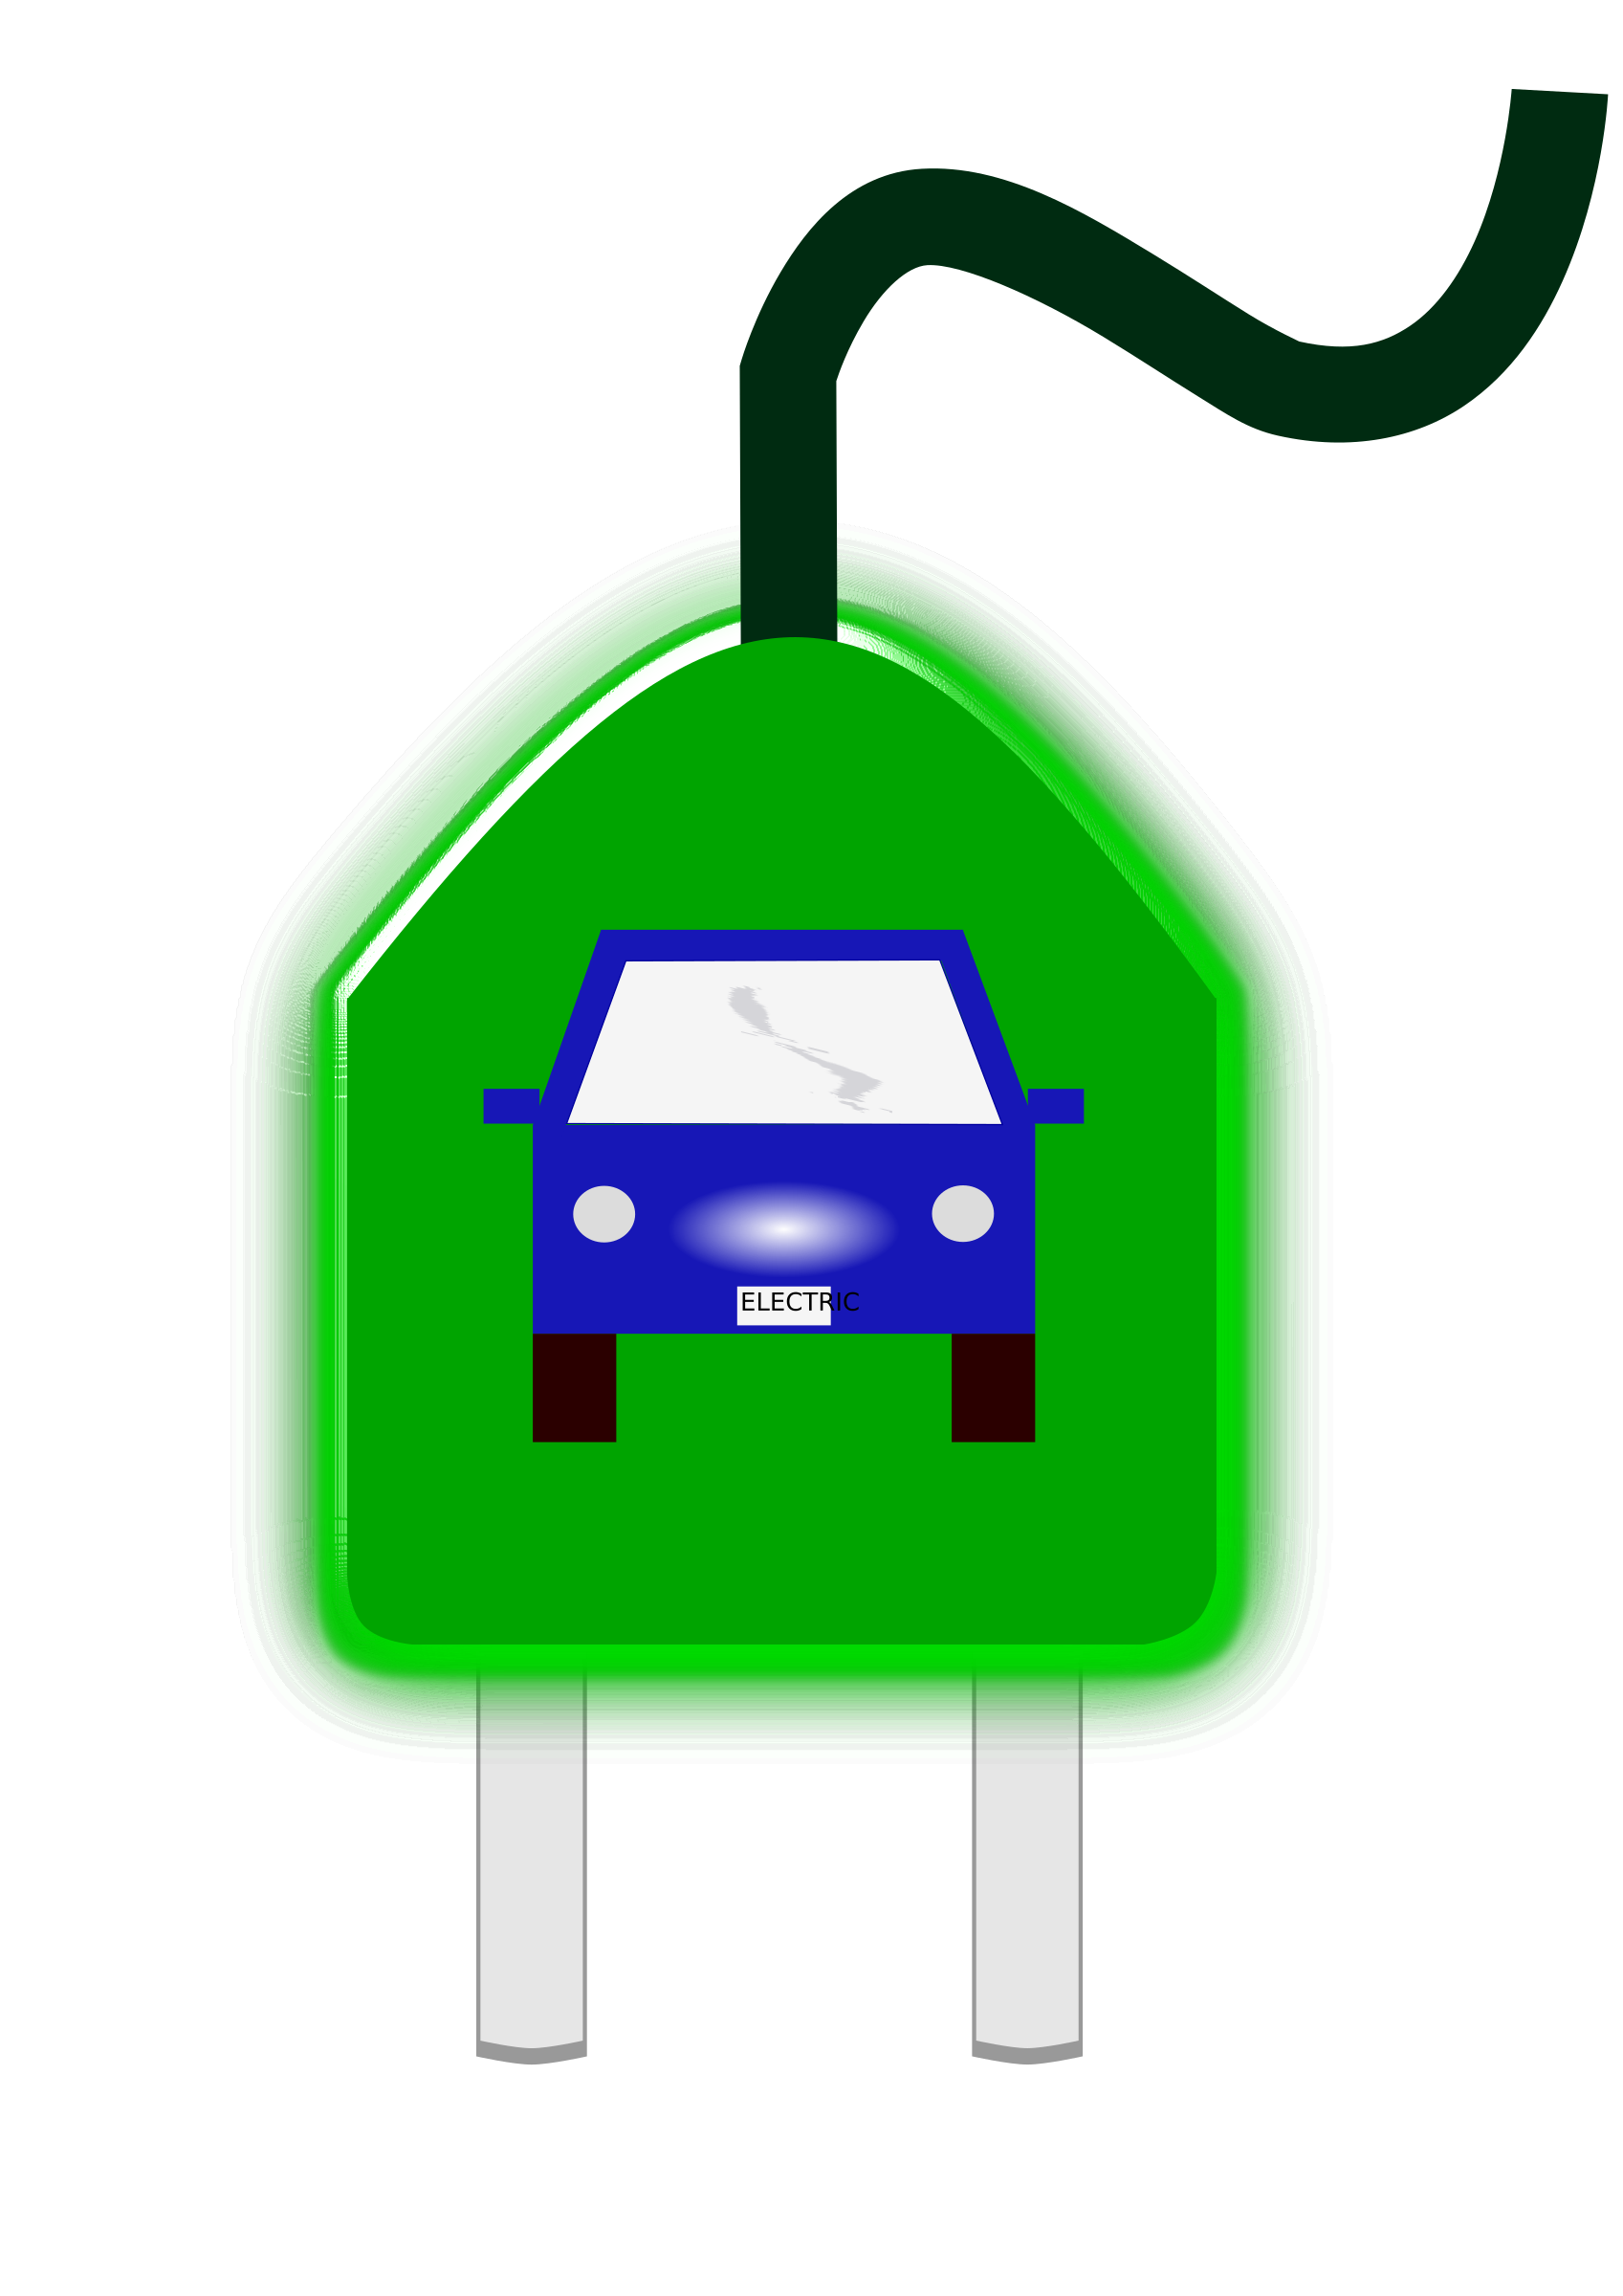 Electrical car by Chrisclipart